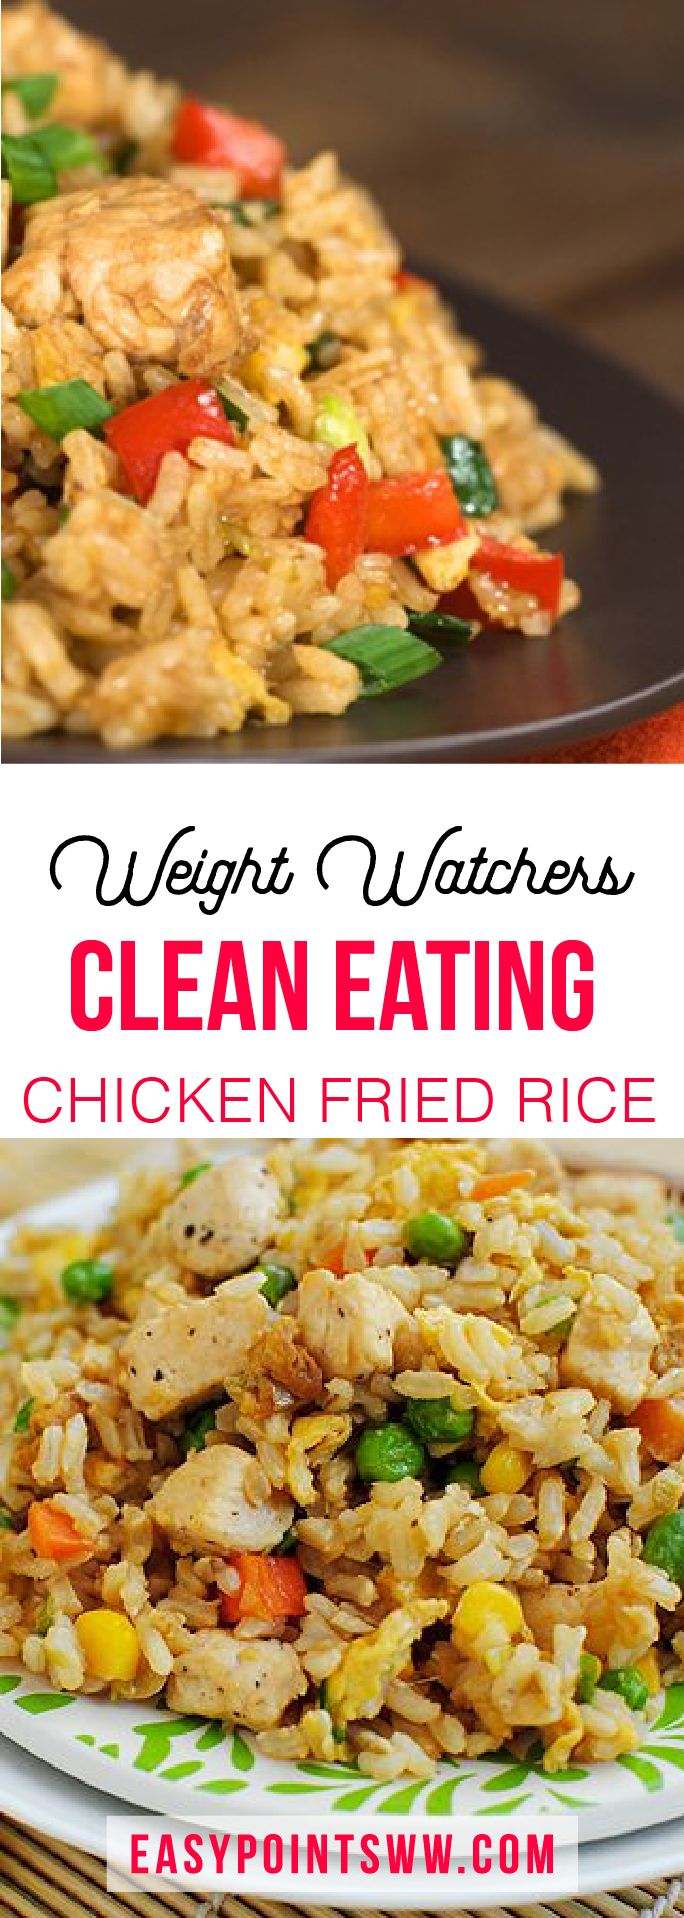 Weight Watchers Chicken Fried Rice ♥